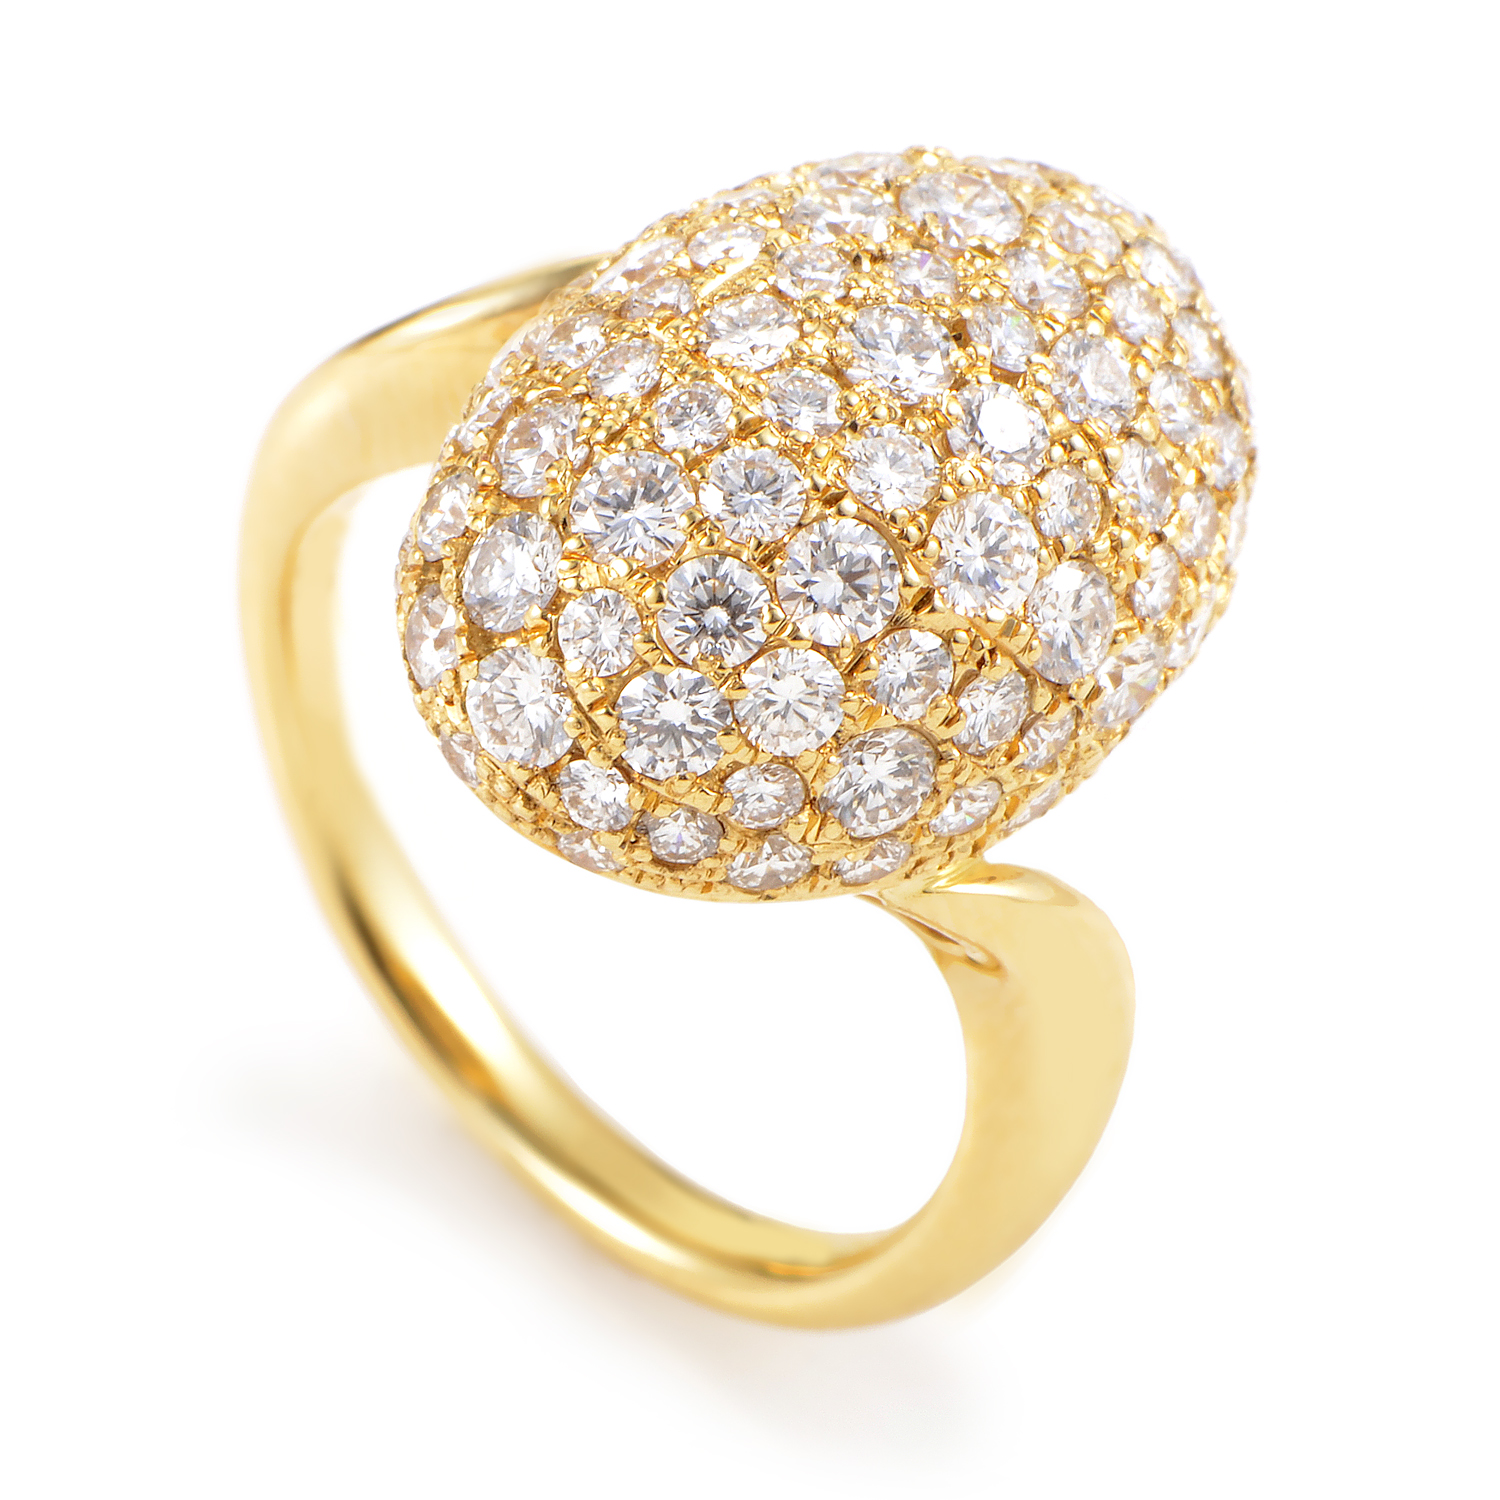 Women's 18K Yellow Gold Diamond Pave Ring MFC01-061316